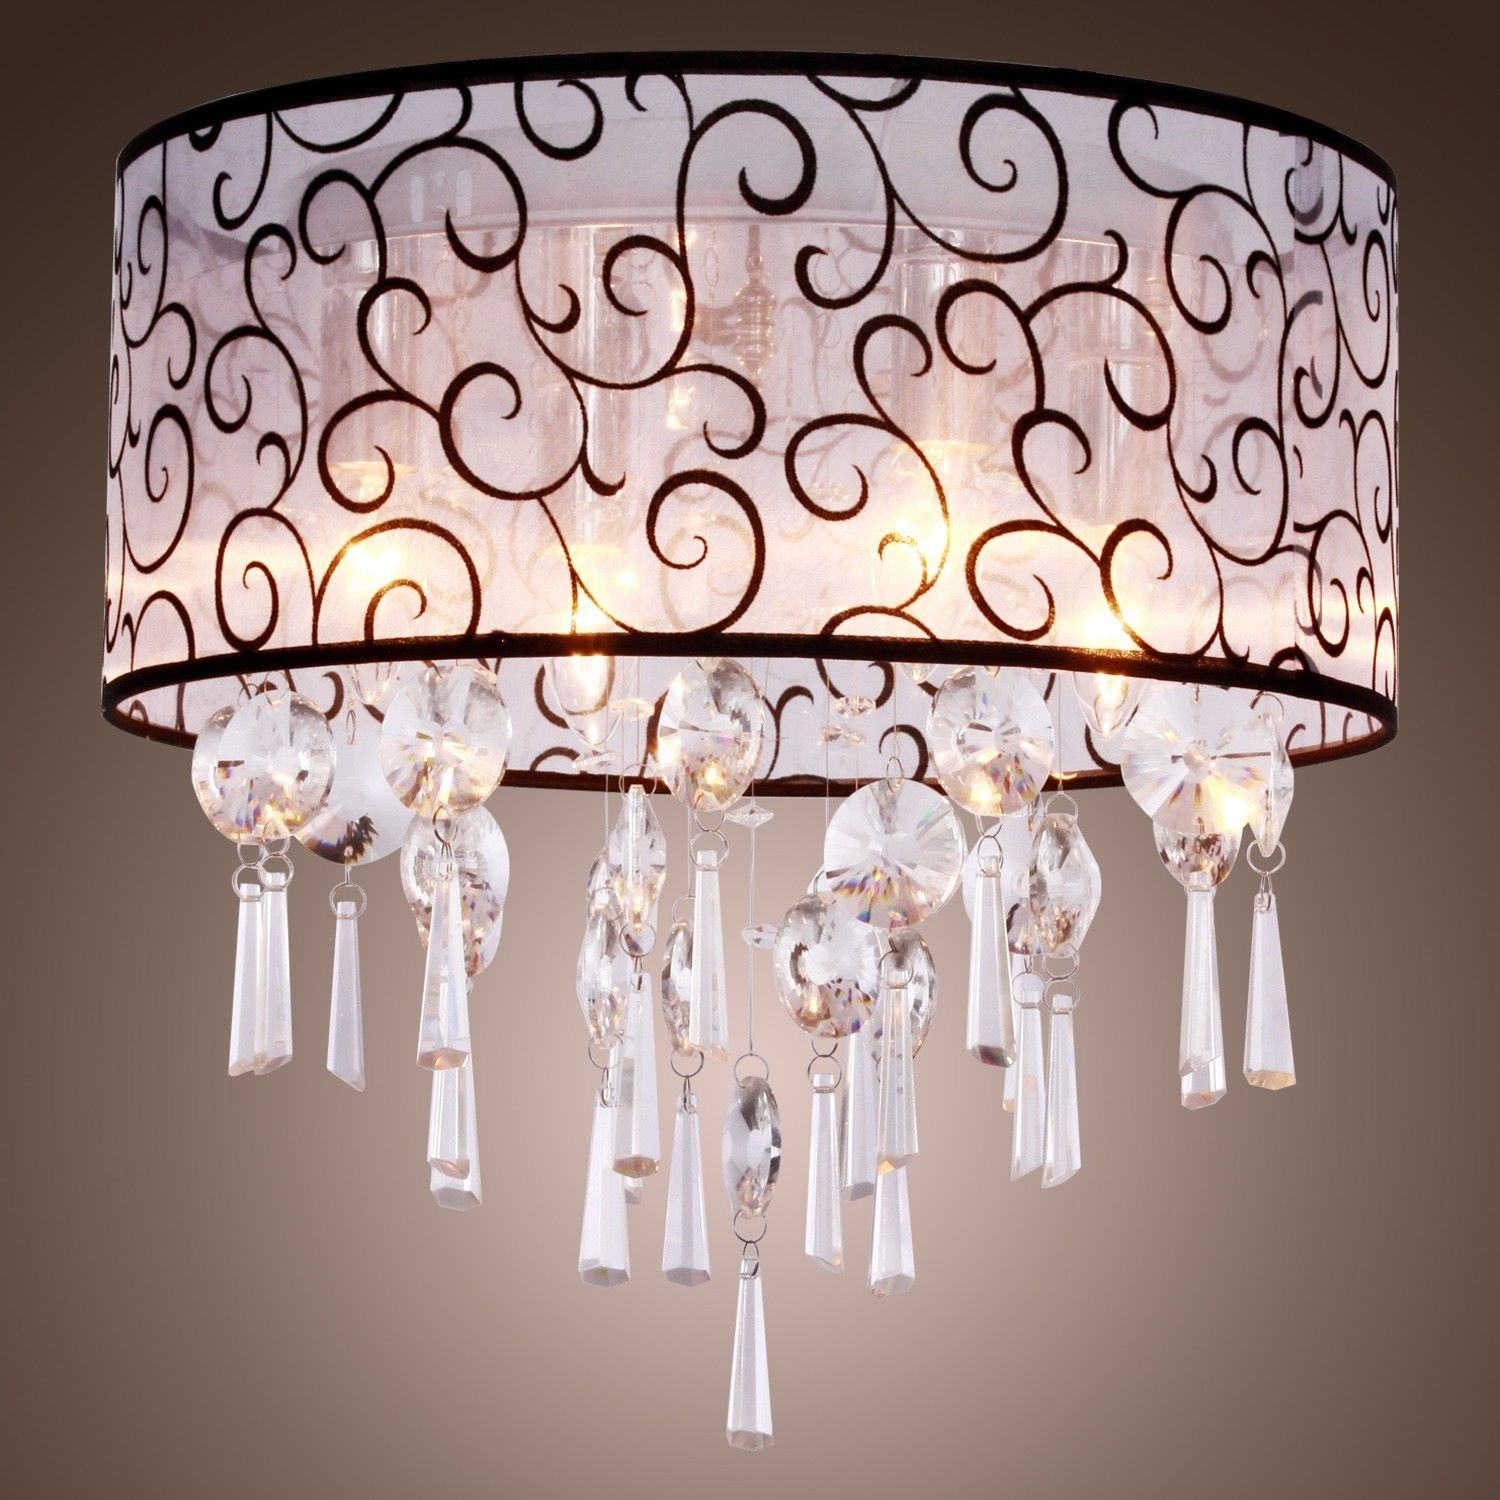 ceiling chandelier lights photo - 3